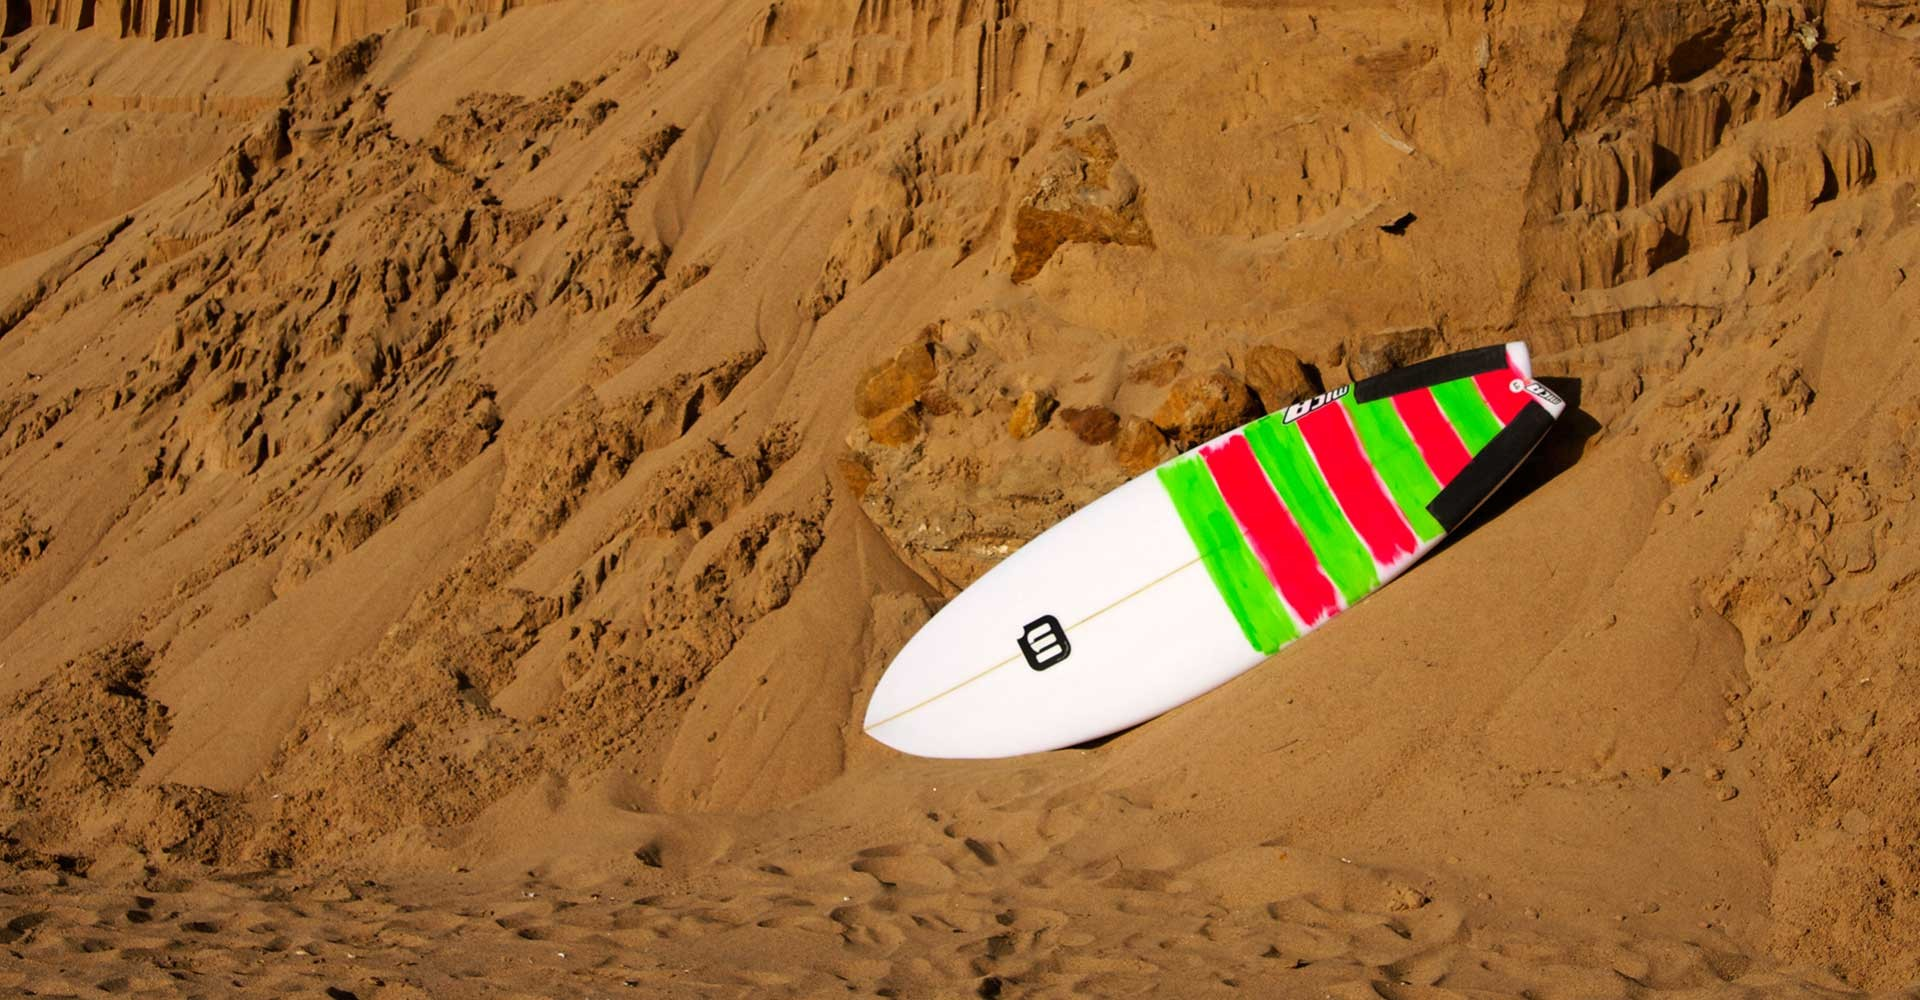 A-cookie-crisp, micasurfboards, mica, surfshop, surfboard, ericeira, custom-surfboards, fcs